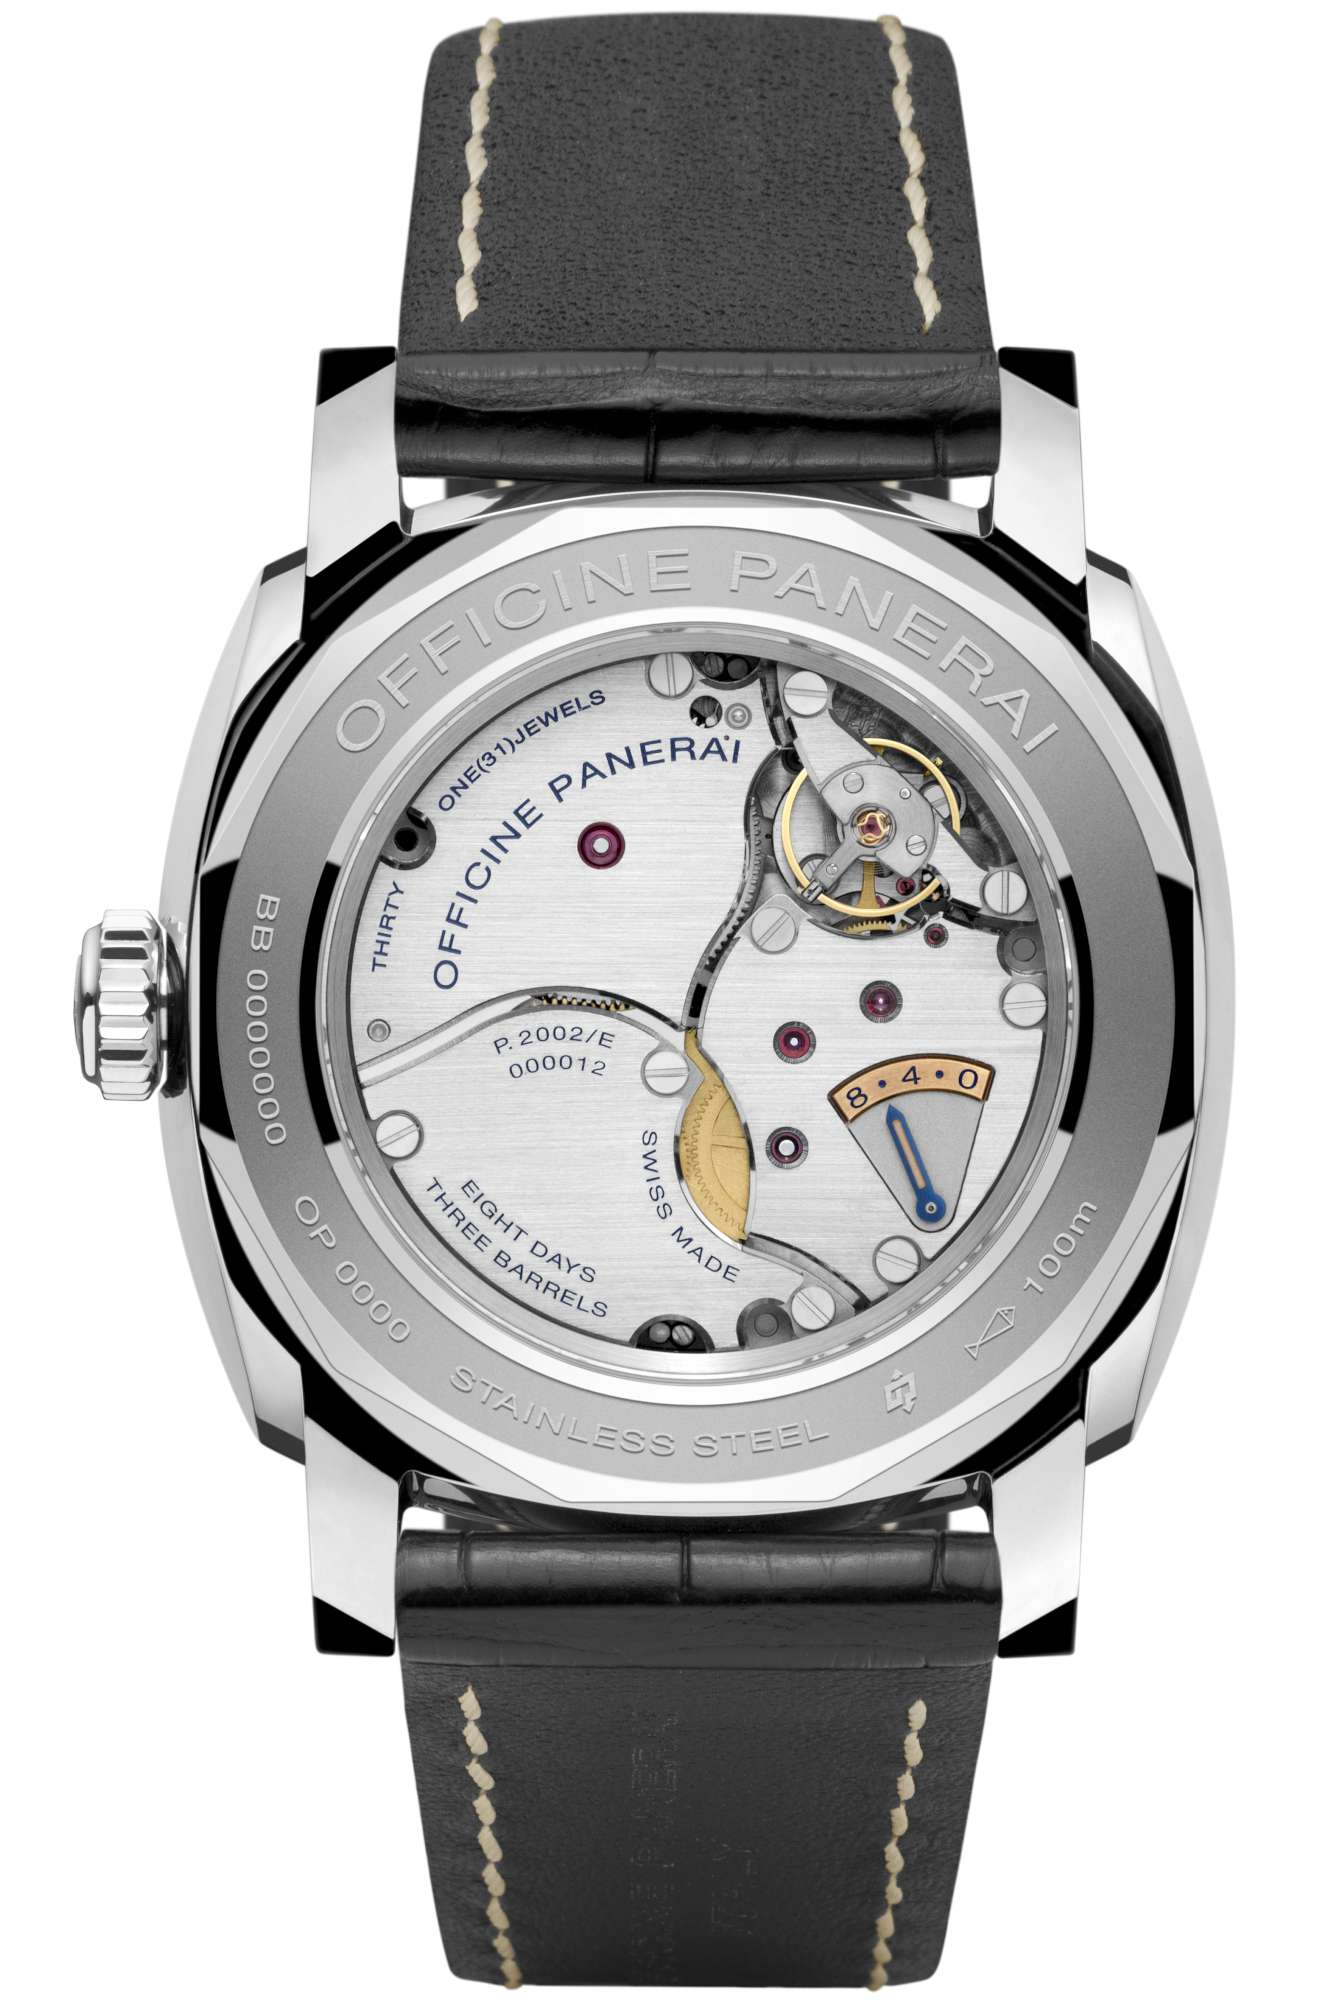 Back of the Radiomir 1940 Equation of Time 8 Days